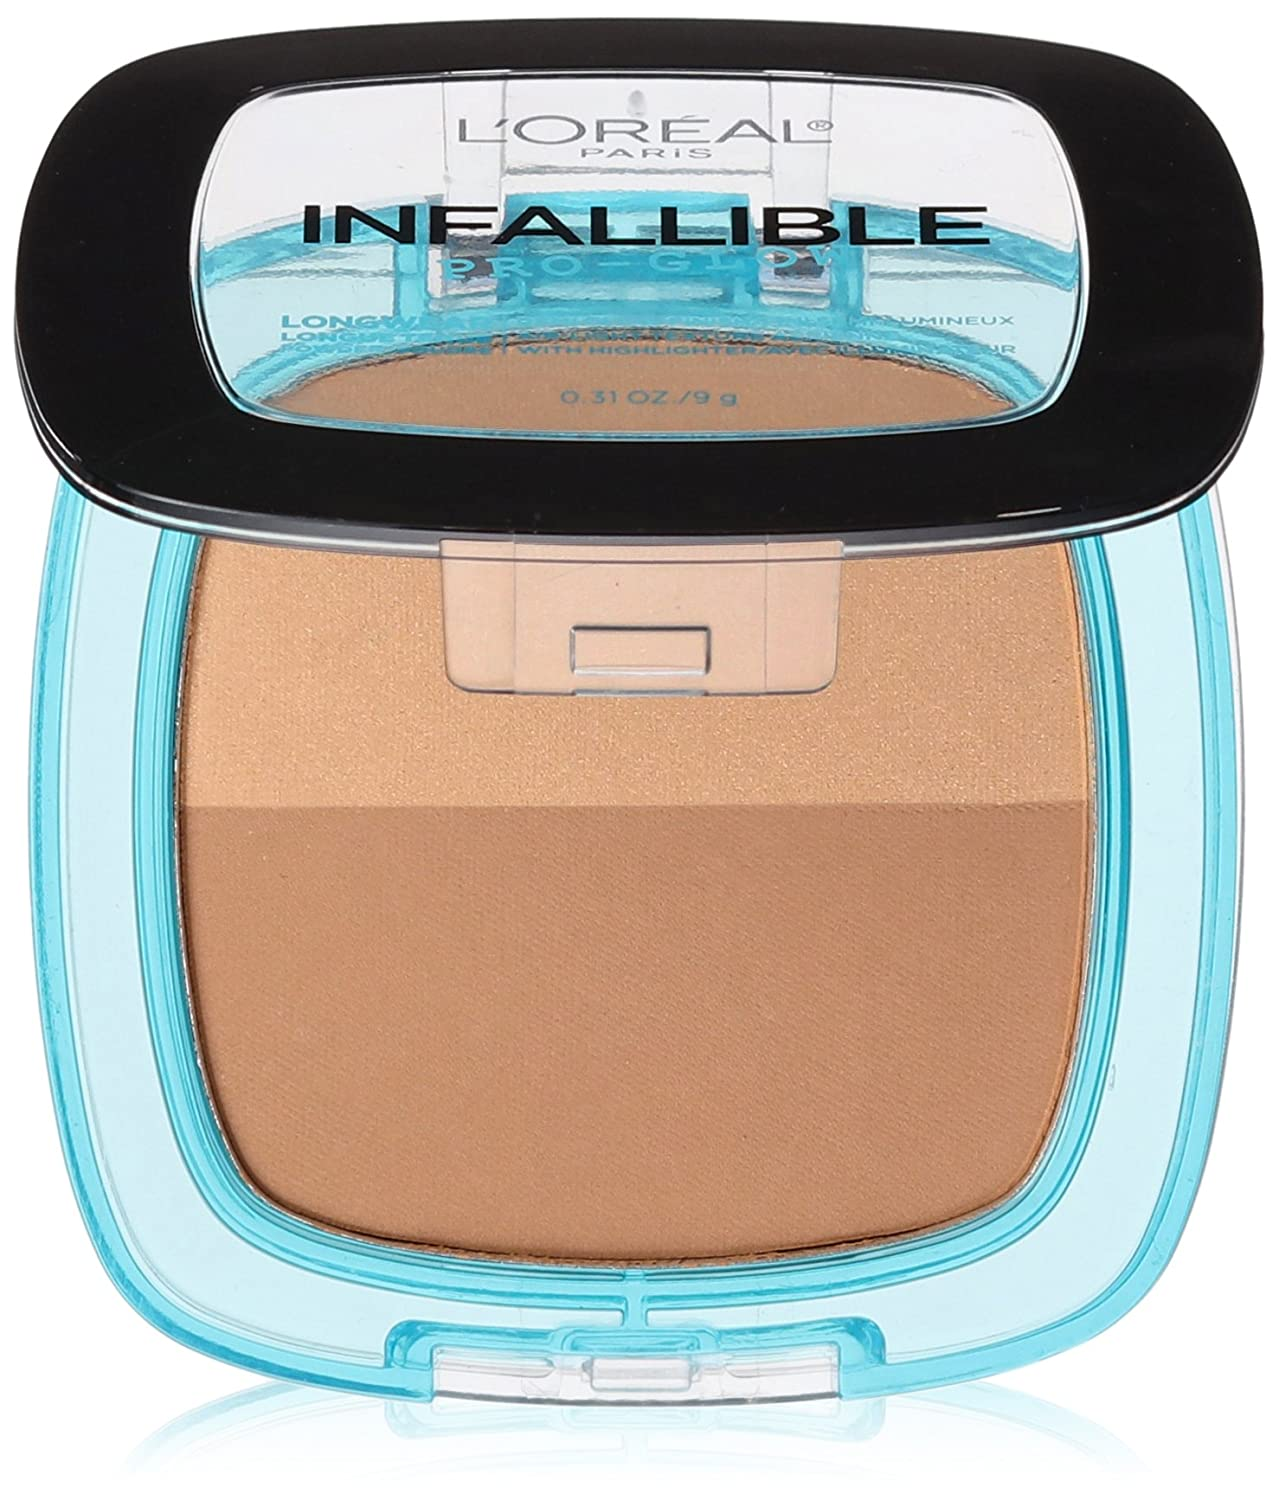 L'Oréal Paris Infallible Pro Glow Pressed Powder, Cocoa, 0.31 oz.